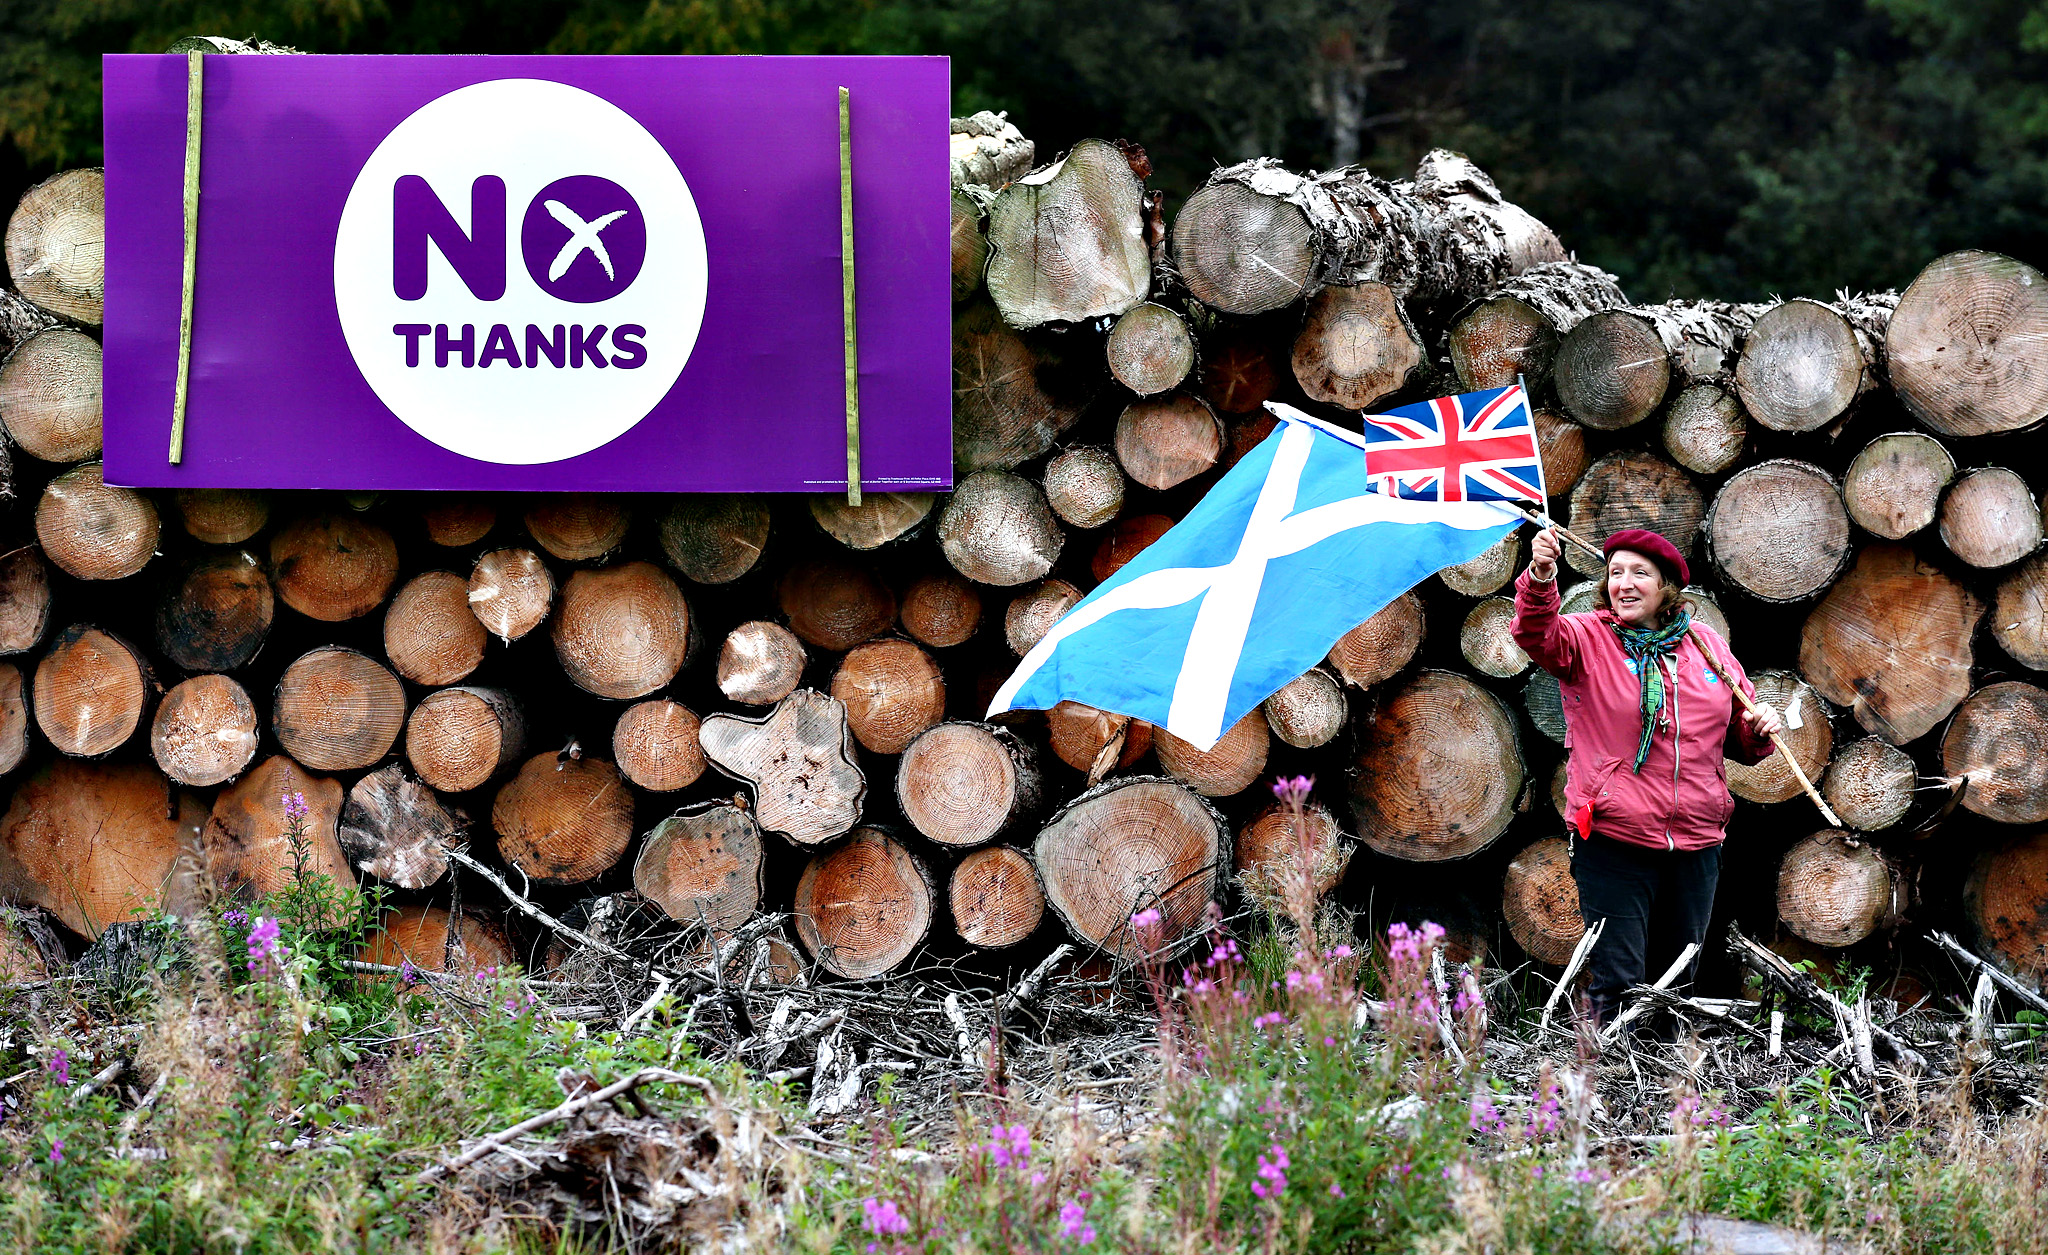 No campaigner Judy Shaw Stewart from Doune as she sits out at the A84 to protect vandalised NO Thanks signs  ahead of the Scottish Referendum on September 18th.  PRESS ASSOCIATION Photo. Picture date: Monday September 15, 2014.